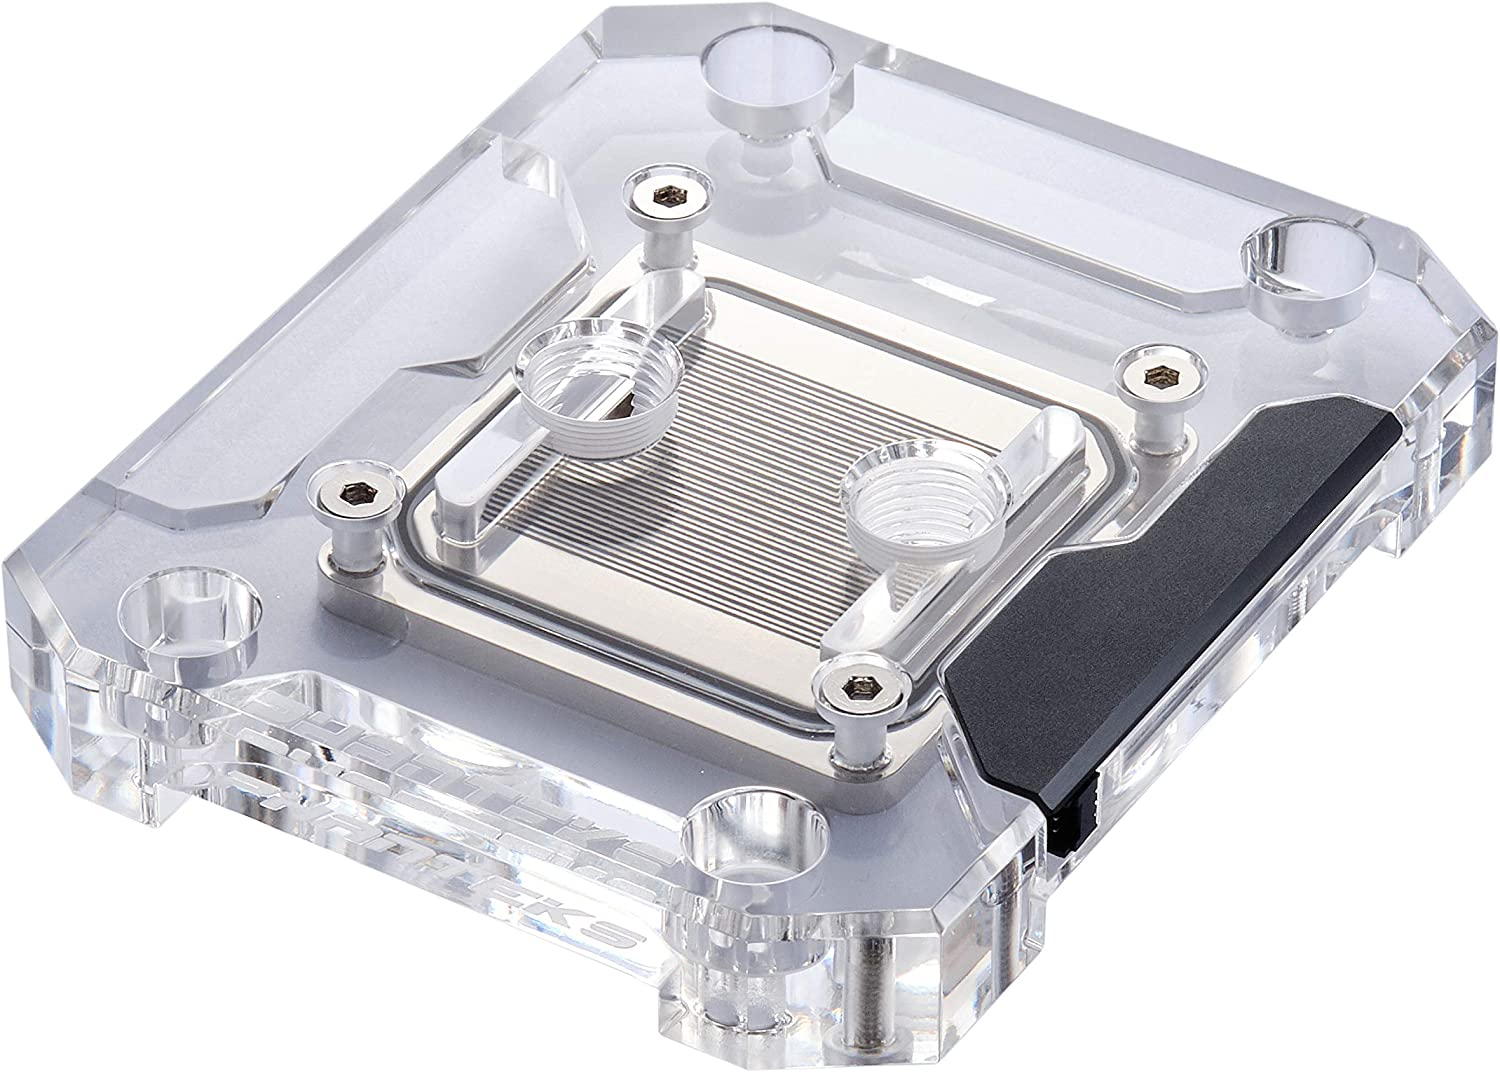 Phanteks Glacier C360a (PH-C360A_01) CPU Water Block for AMD AM4, Acrylic Cover, Digital-RGB LED Lighting, Chrome and Black Cover